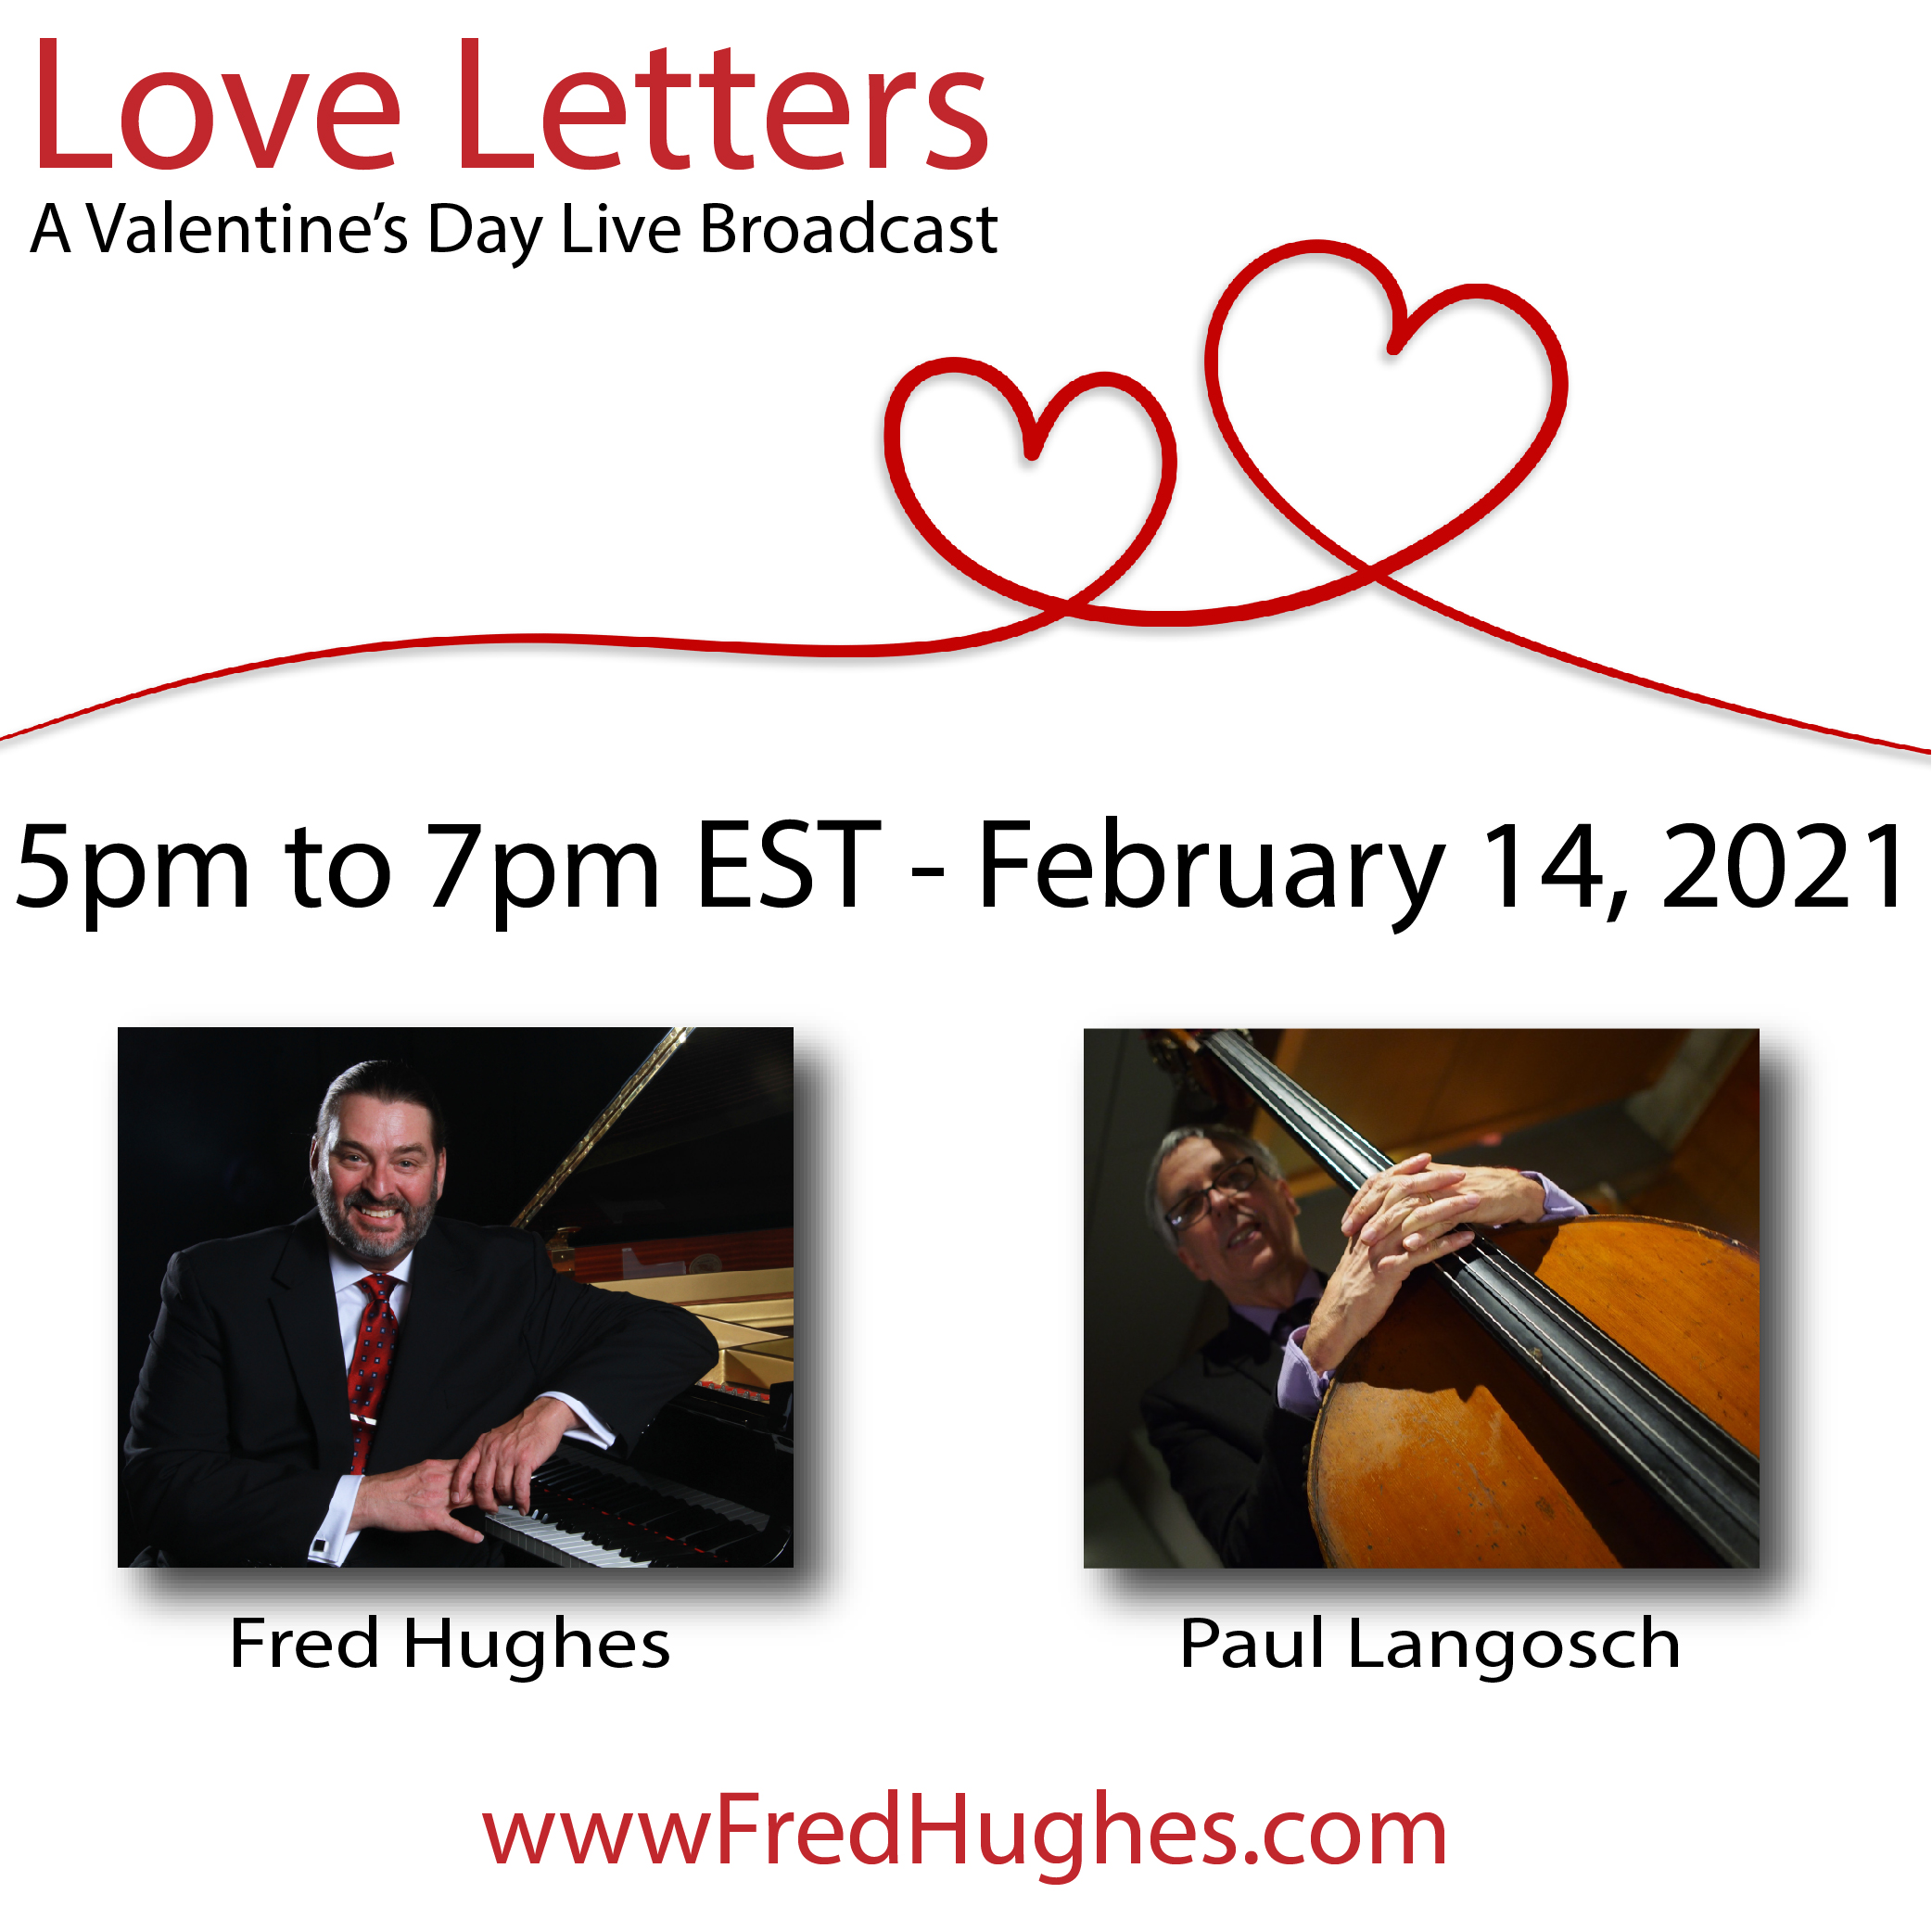 Love Letters - A Valentine's Day Live Broadcast